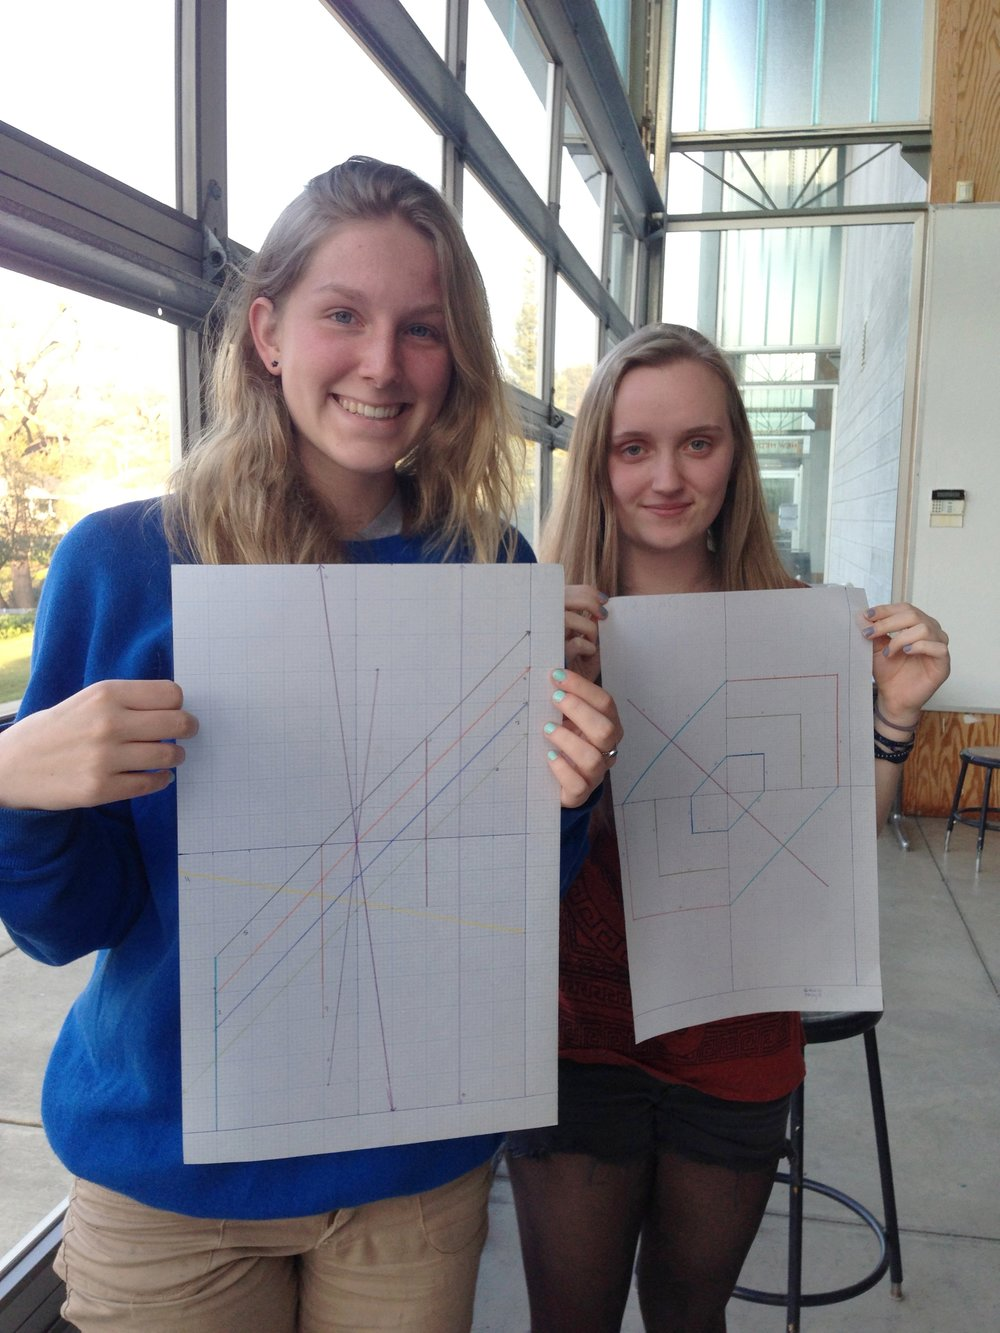 Grace and Emily with their linear graph drawings